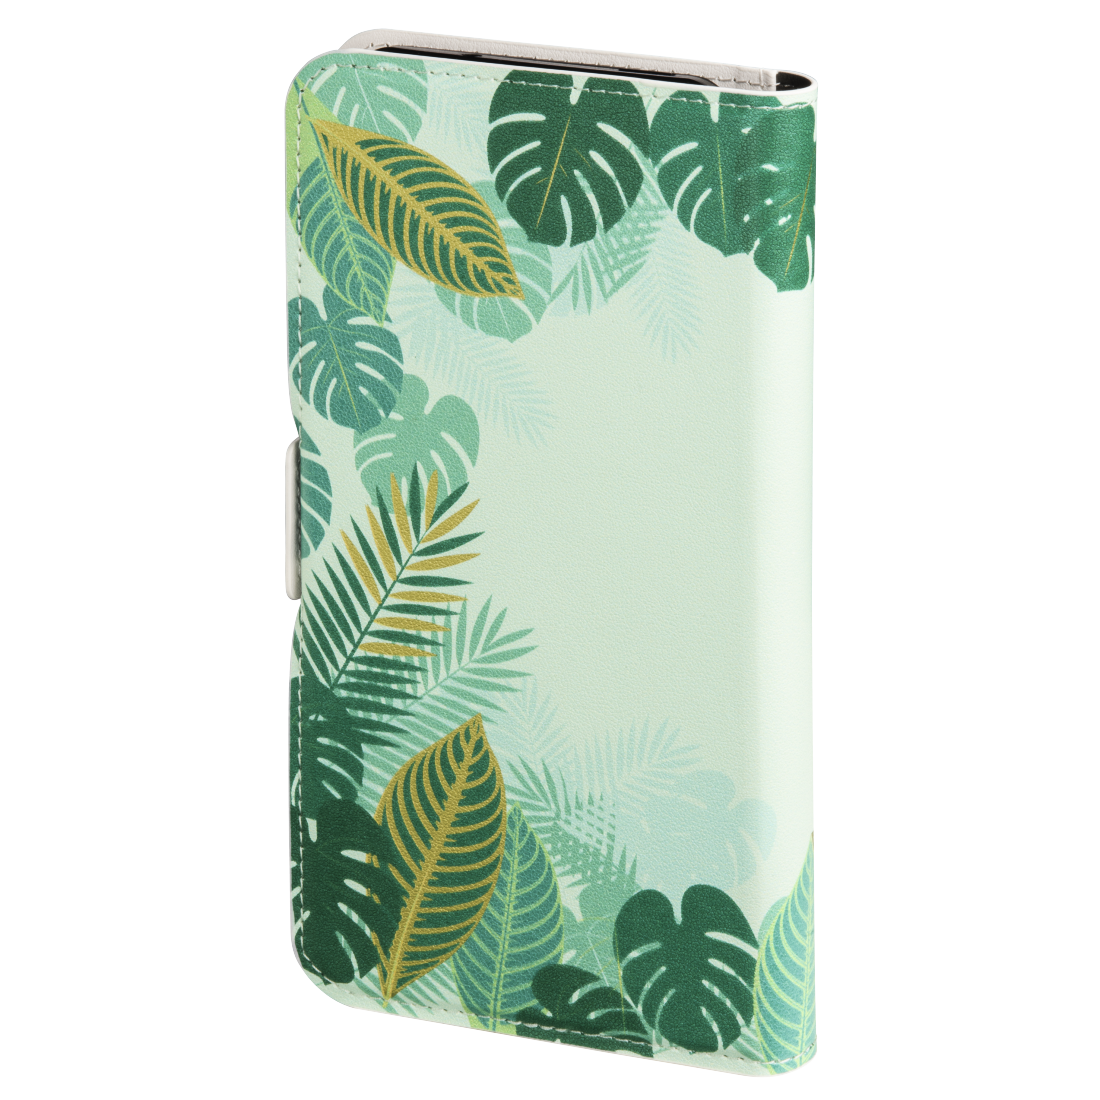 abx4 High-Res Image4 - Hama, Smart Move - Tropical Booklet, size XXL (5.1 - 5.8), green